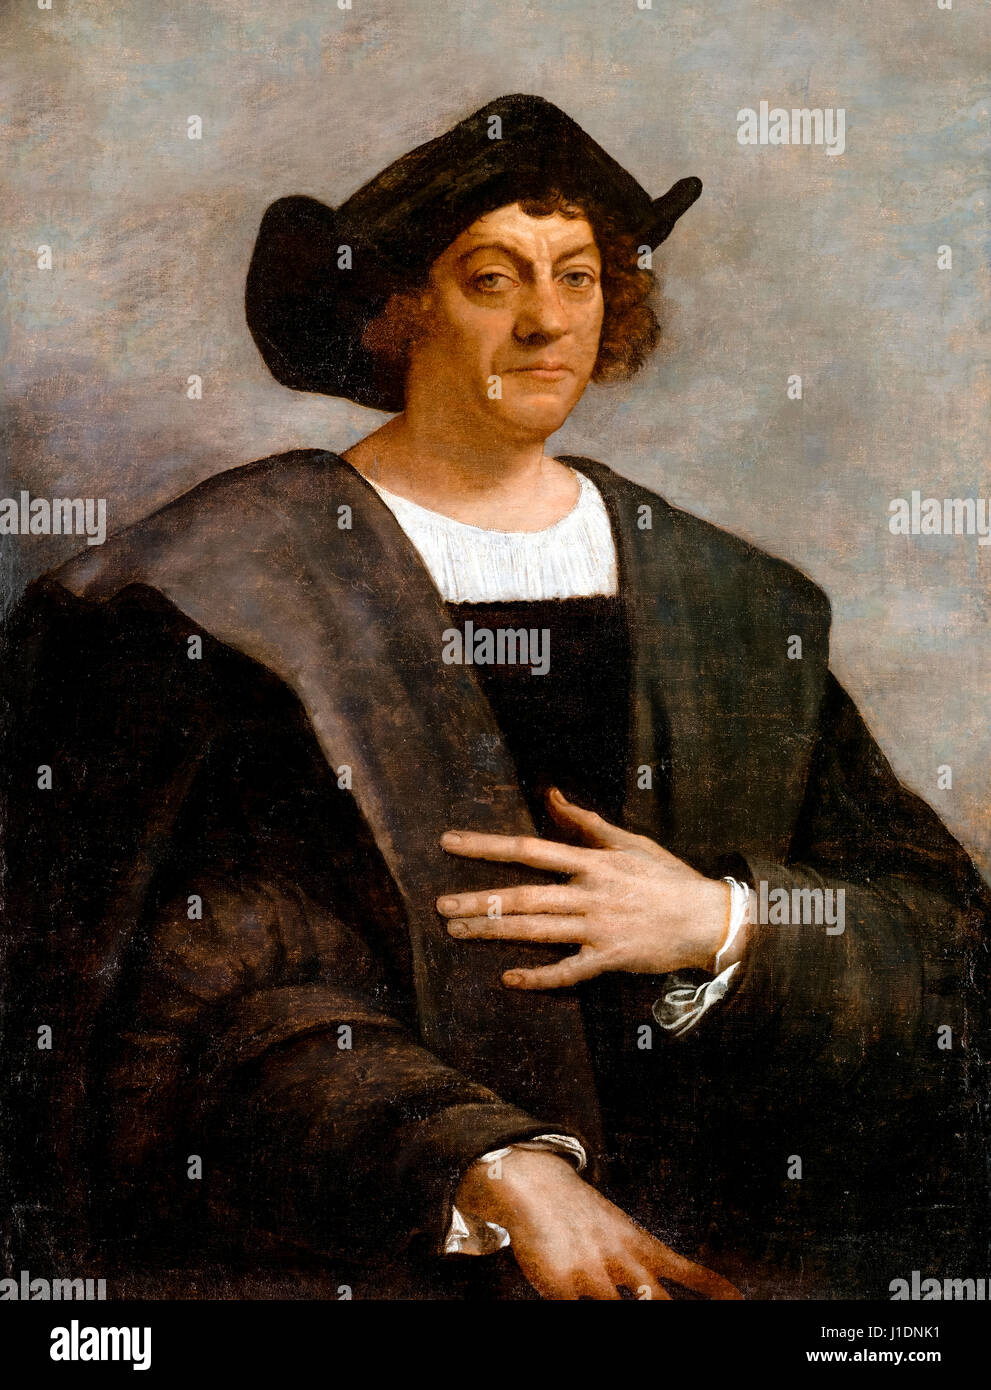 christopher columbus a pitiable man Christopher columbus' stature in us classrooms has declined somewhat through the years, and many districts will not observe the explorer's namesake holiday on monday although lessons vary, many .